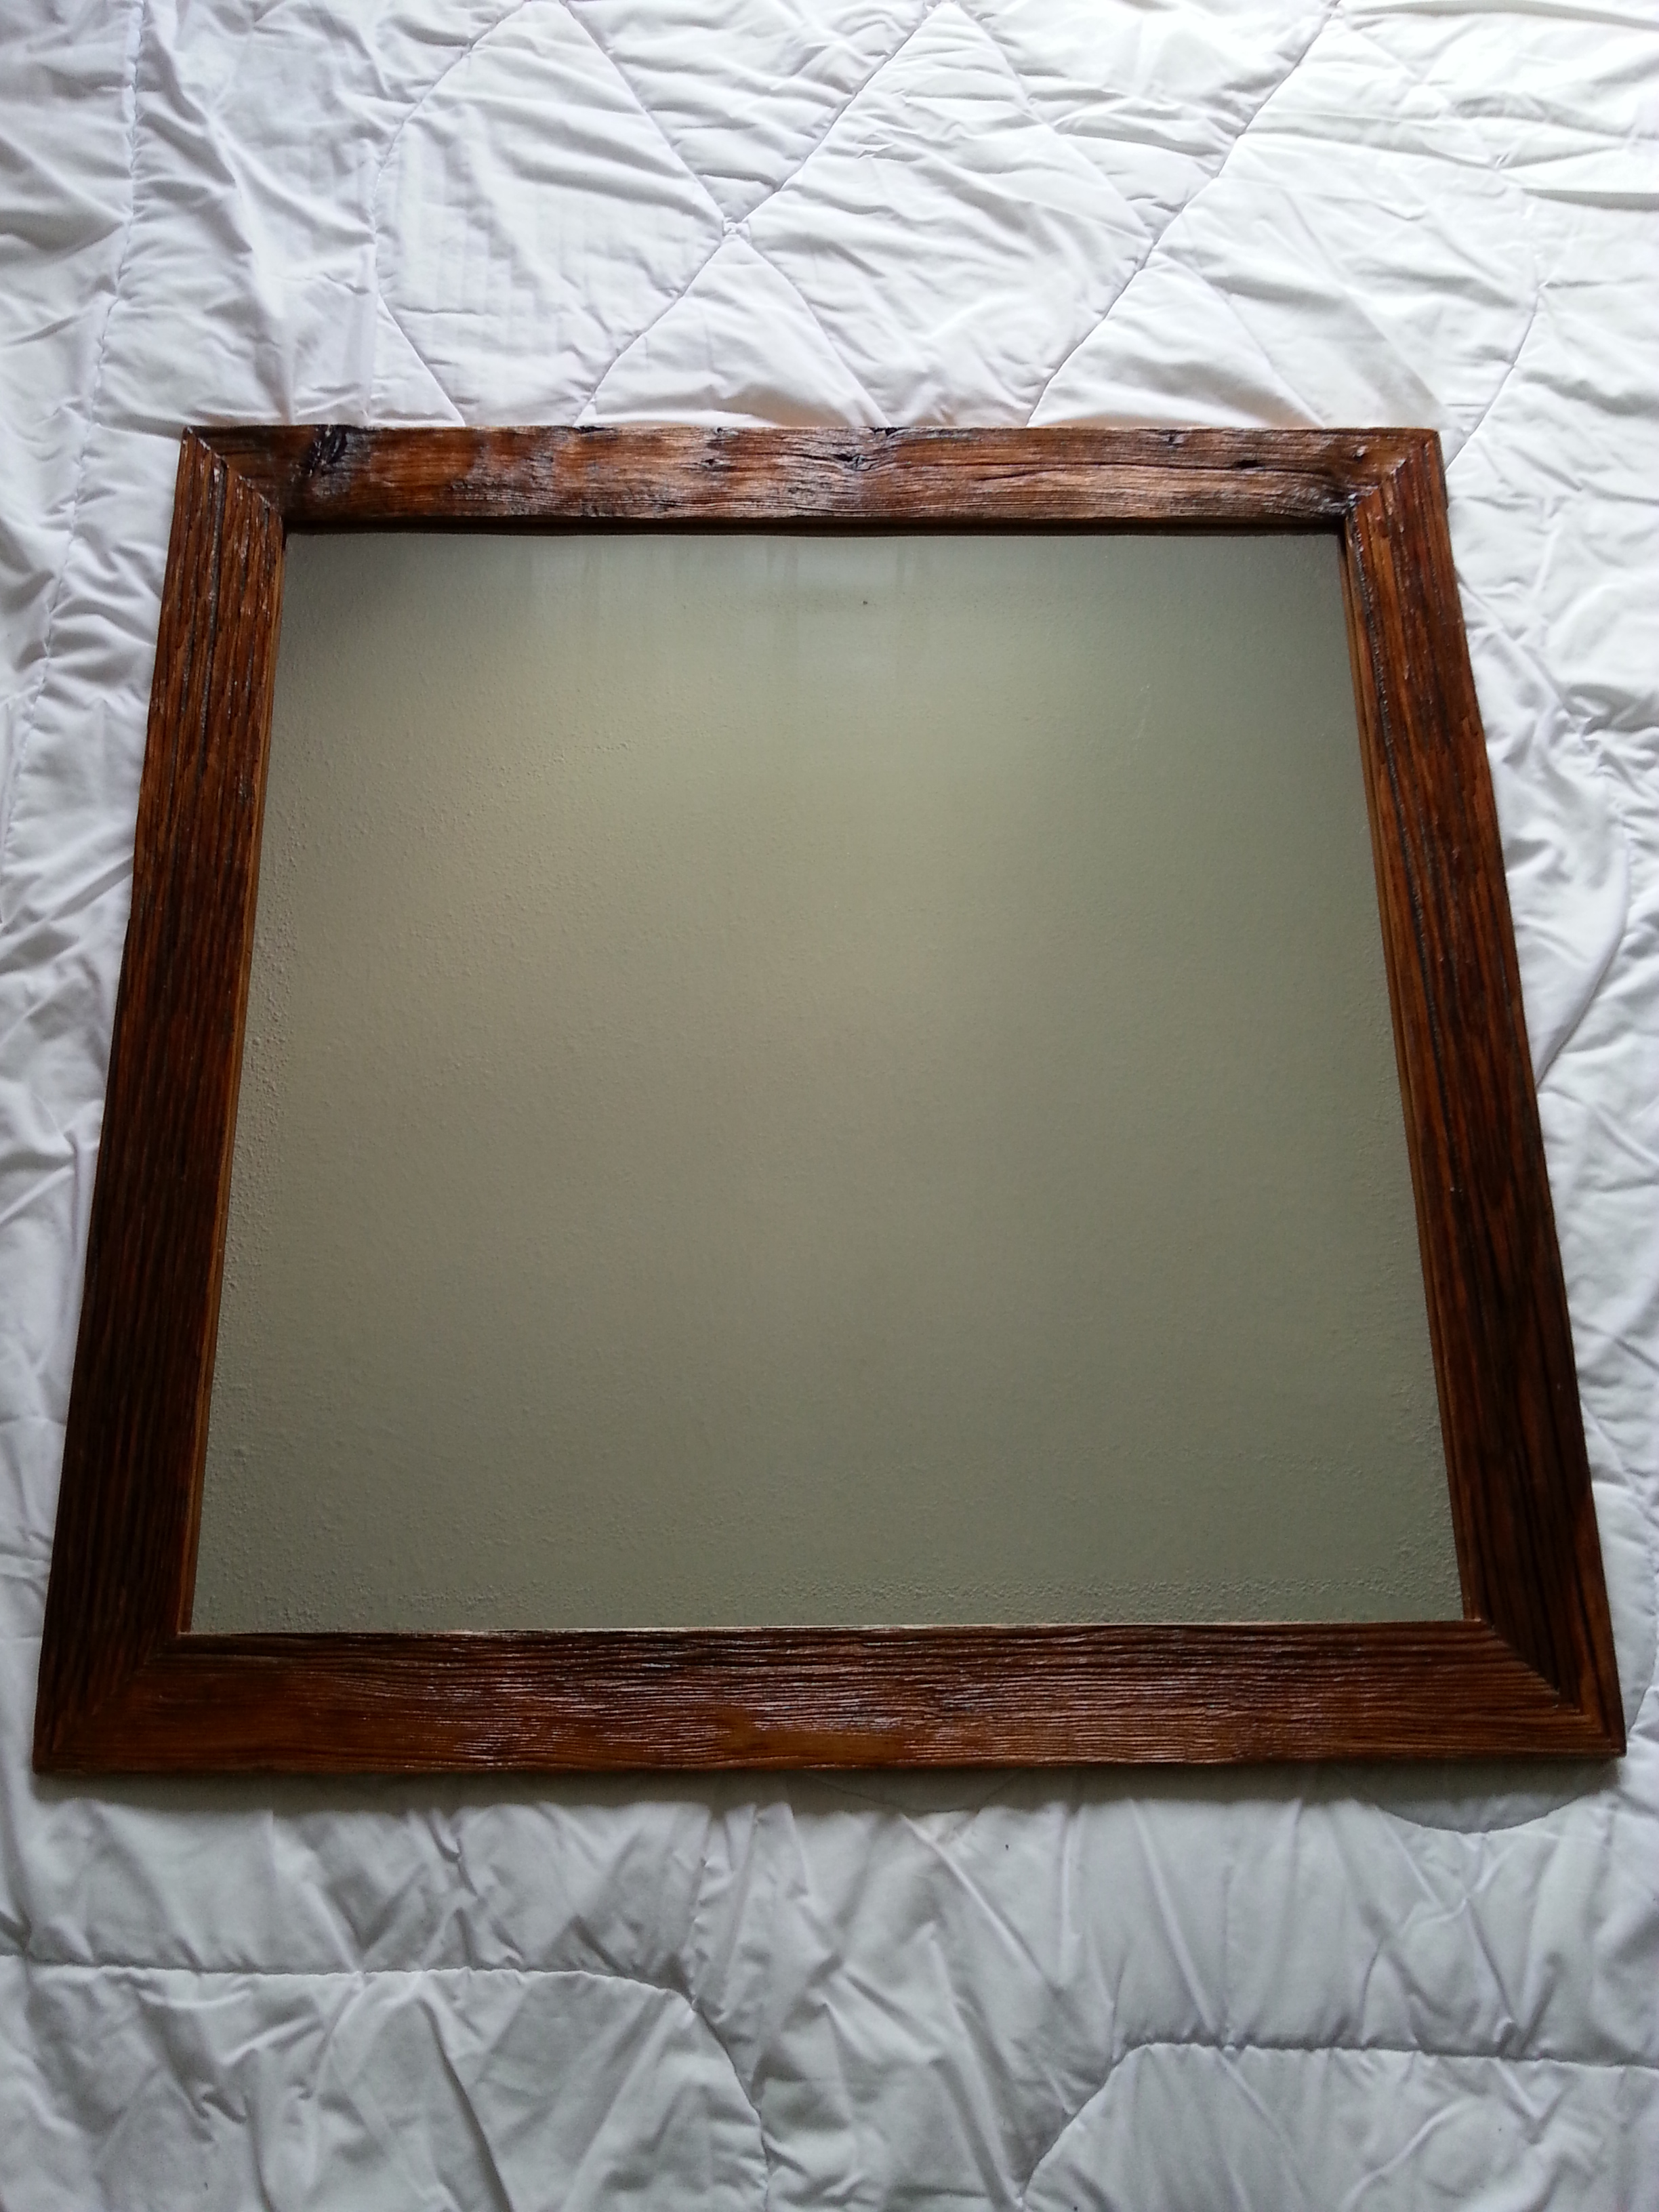 Rattan Framed Mirrors | Reclaimed Wood Mirror | Decorative Vanity Mirror